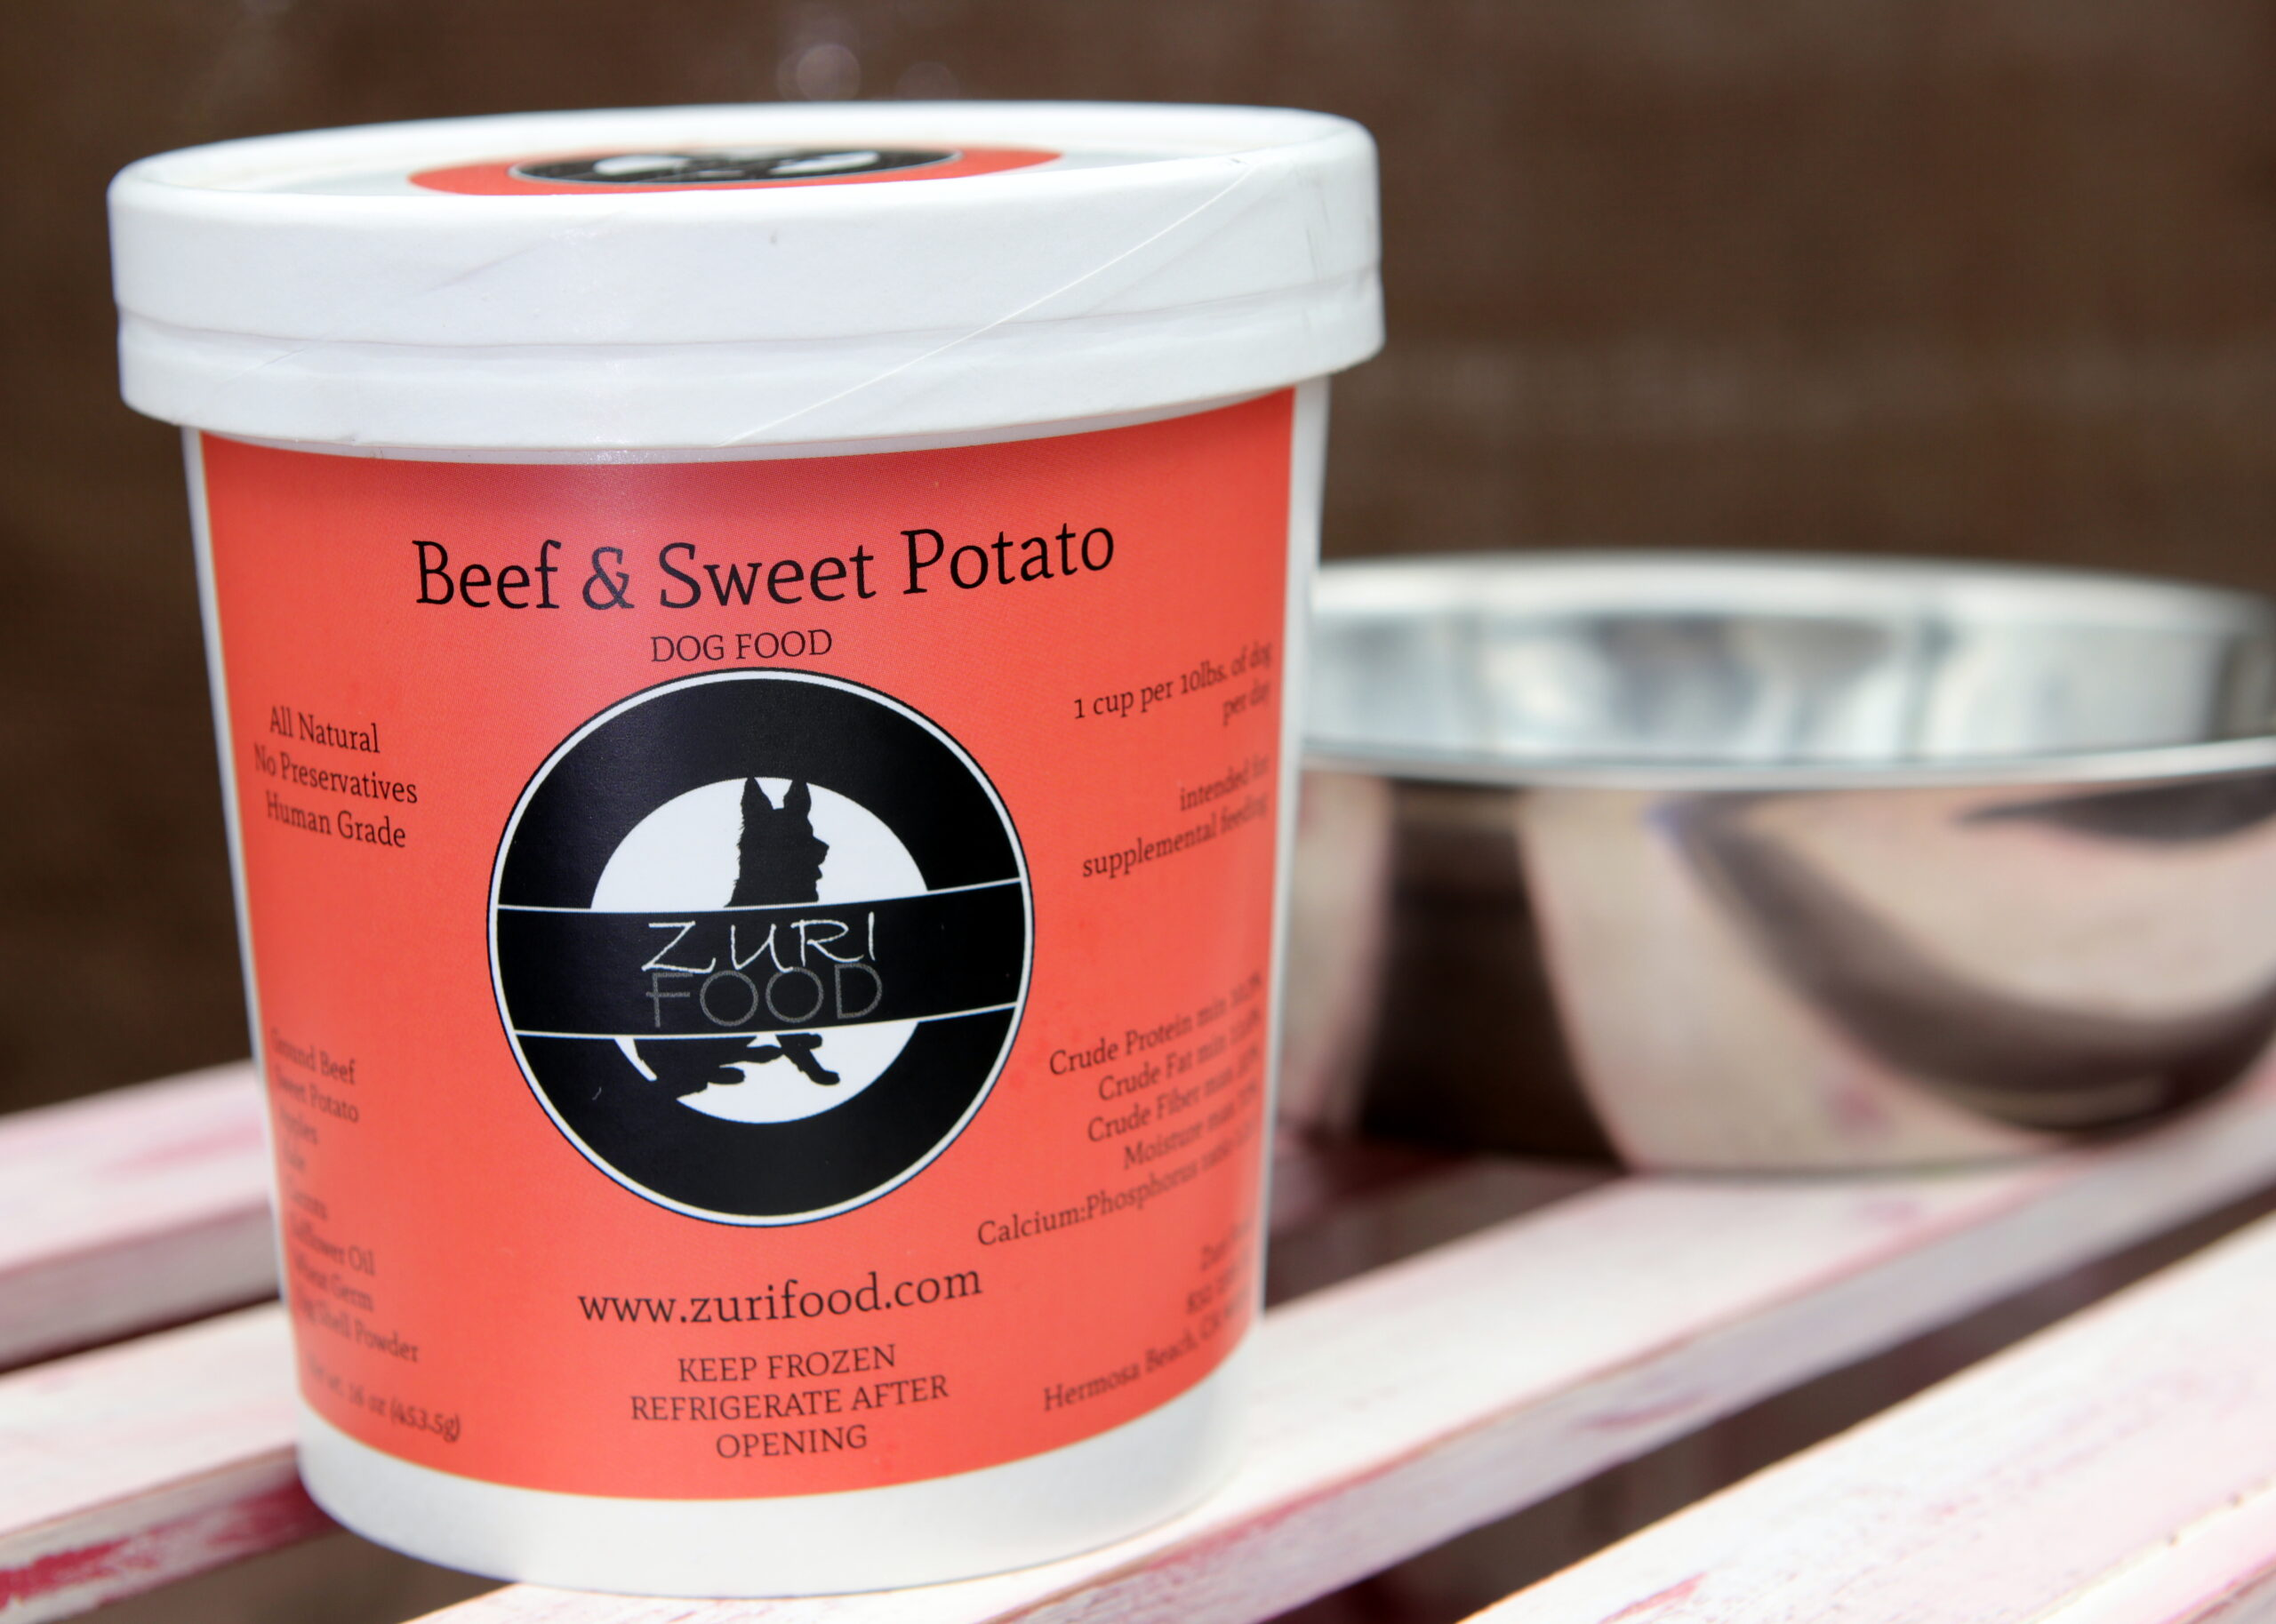 Beef & Sweet Potato